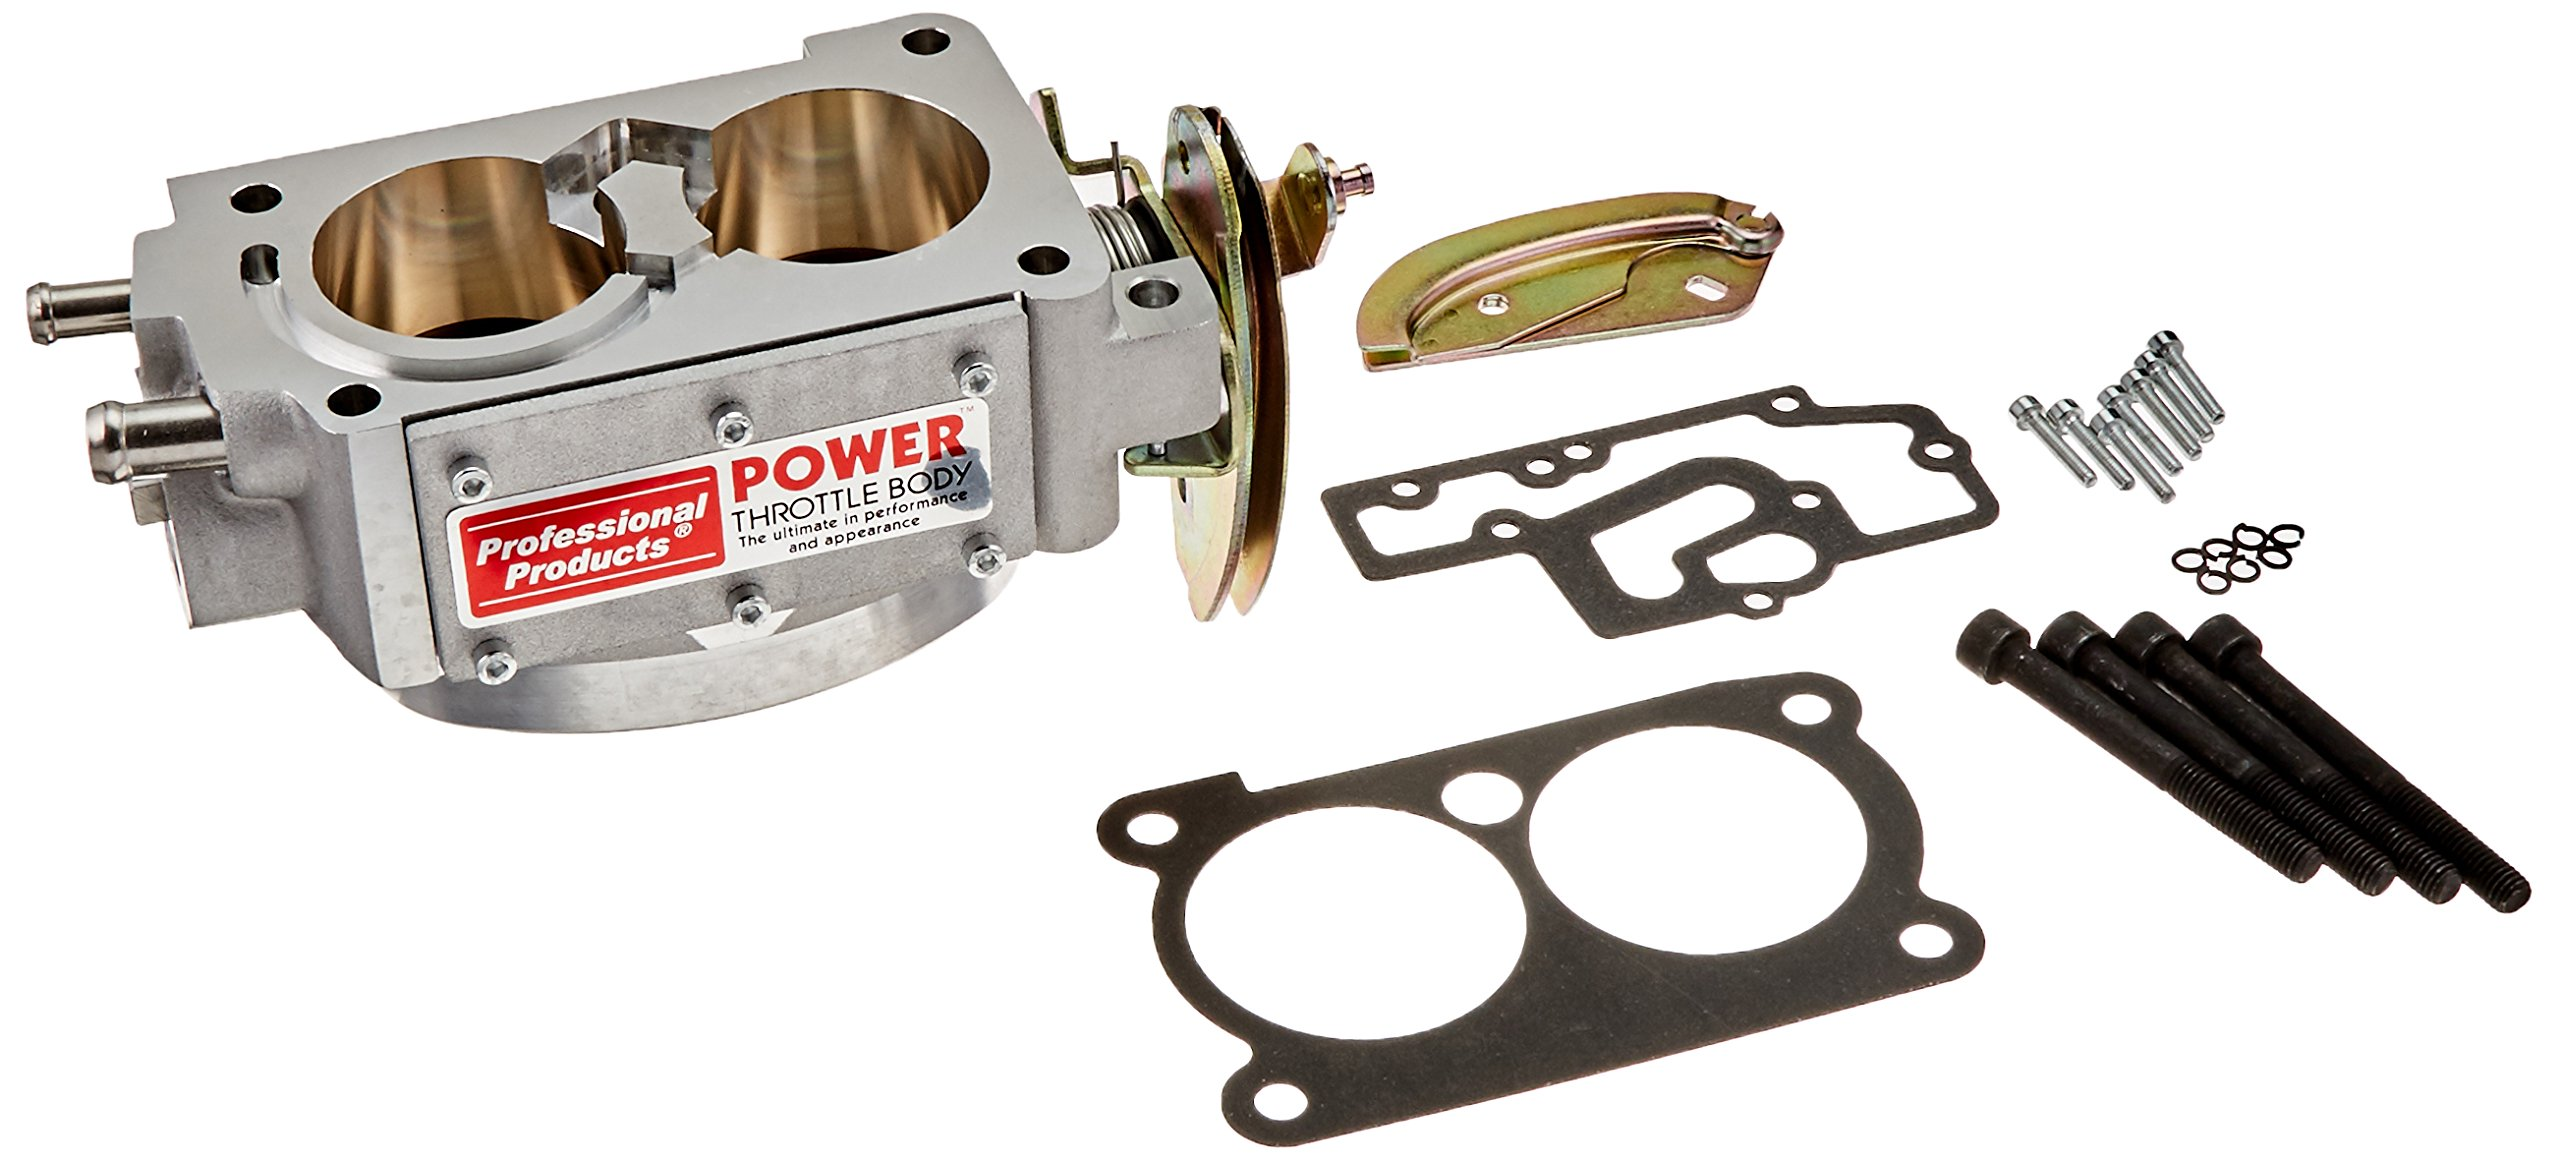 Professional Products (69701) 52mm Satin Throttle Body for Chevrolet/Pontiac